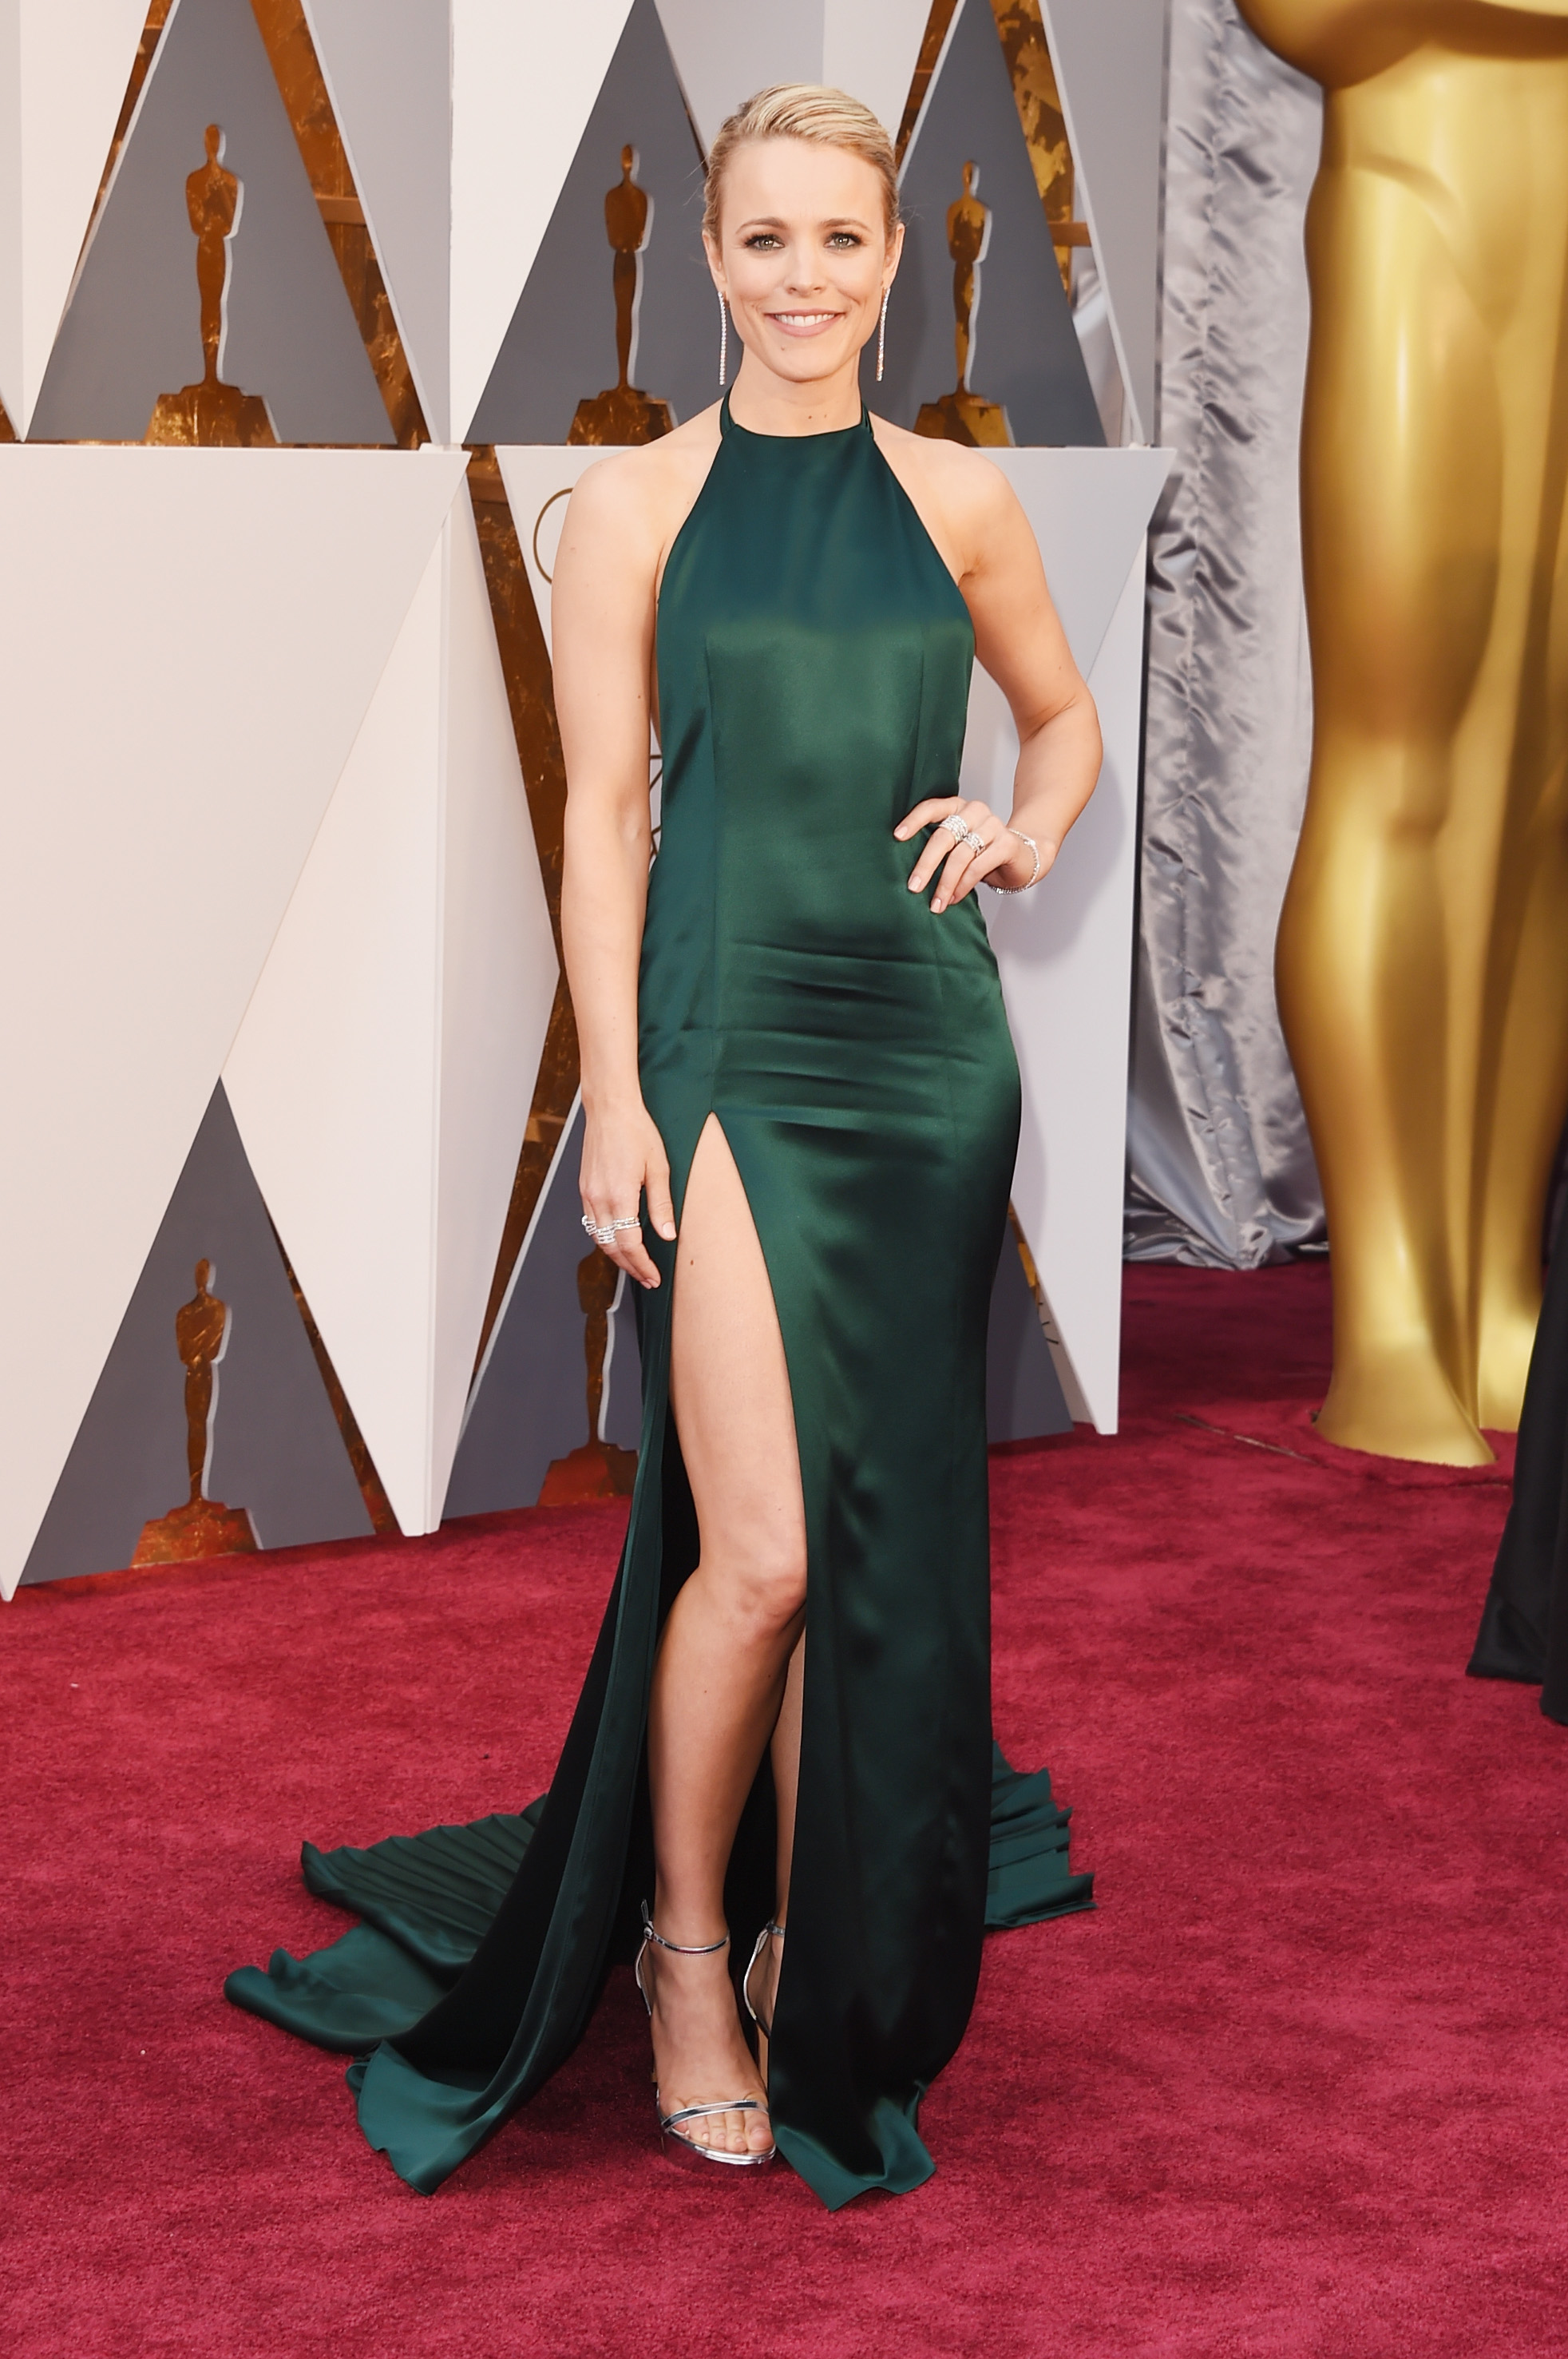 Rachel McAdams attends the 88th Annual Academy Awards on Feb. 28, 2016 in Hollywood, Calif.